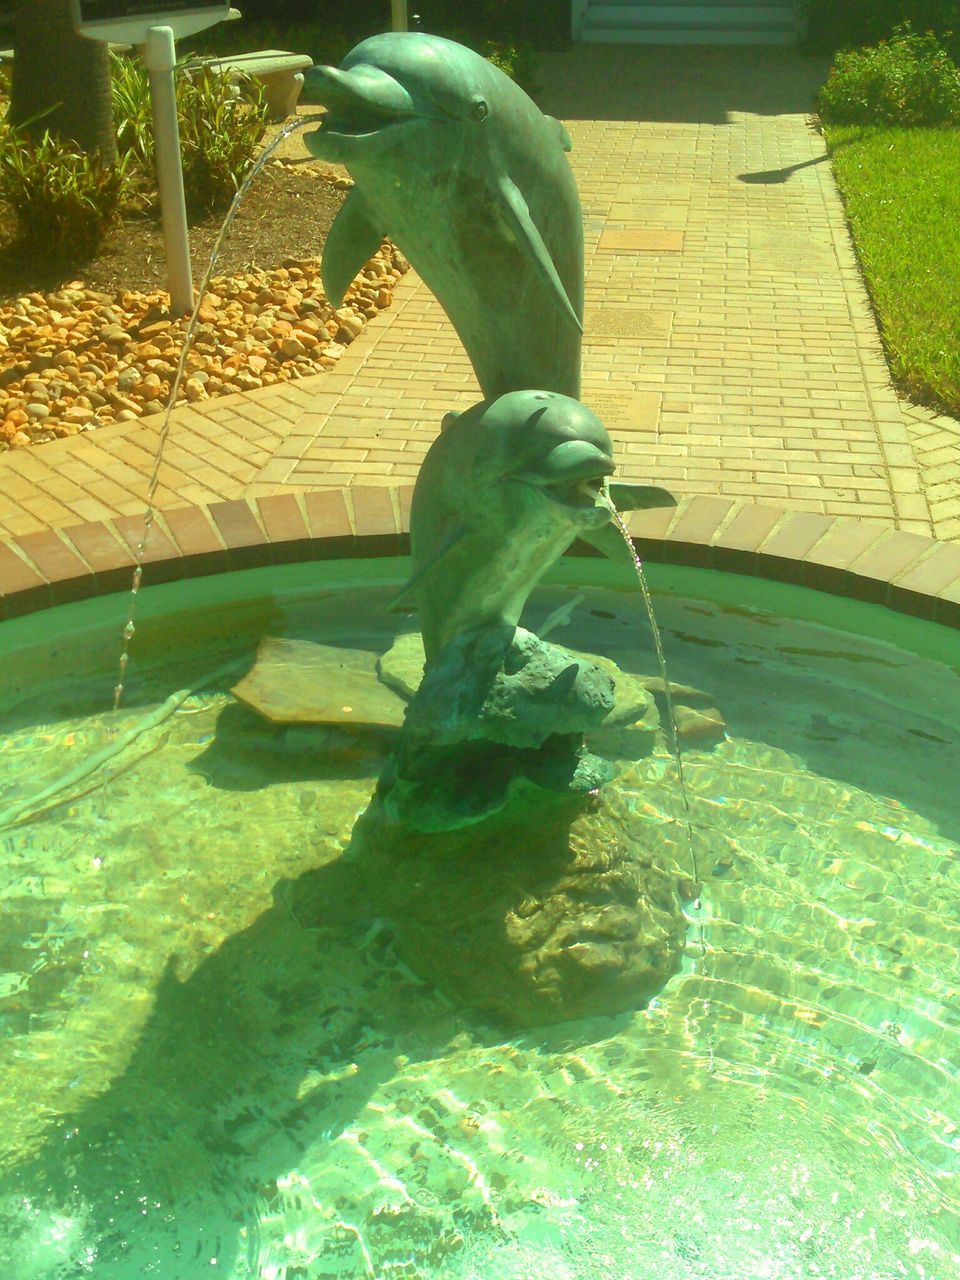 statue, sculpture, art and craft, water, human representation, day, green color, no people, outdoors, growth, nature, close-up